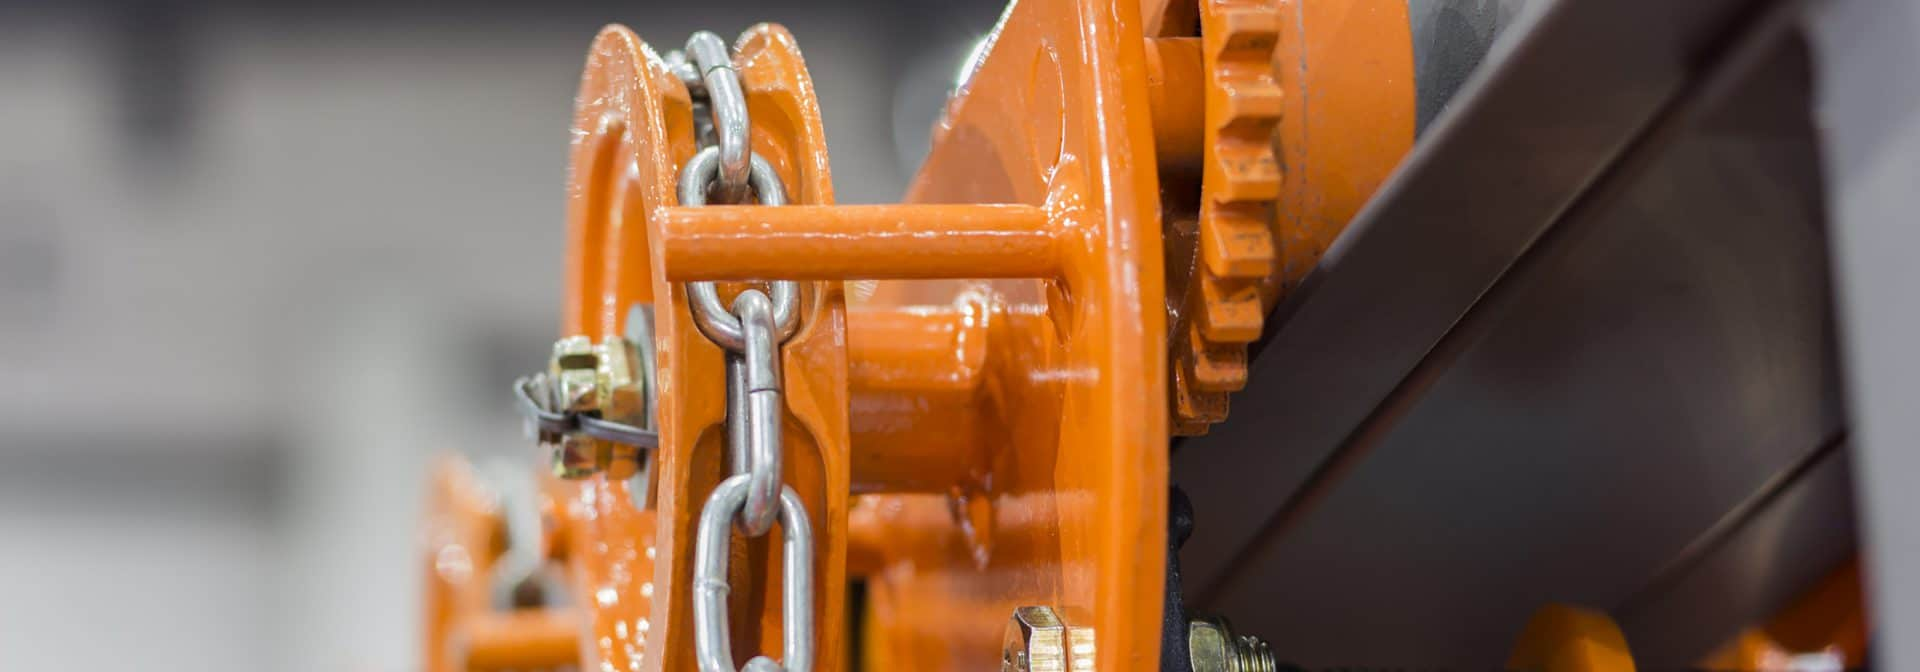 ELCEE | Industrial Steel Chains in orange hoists